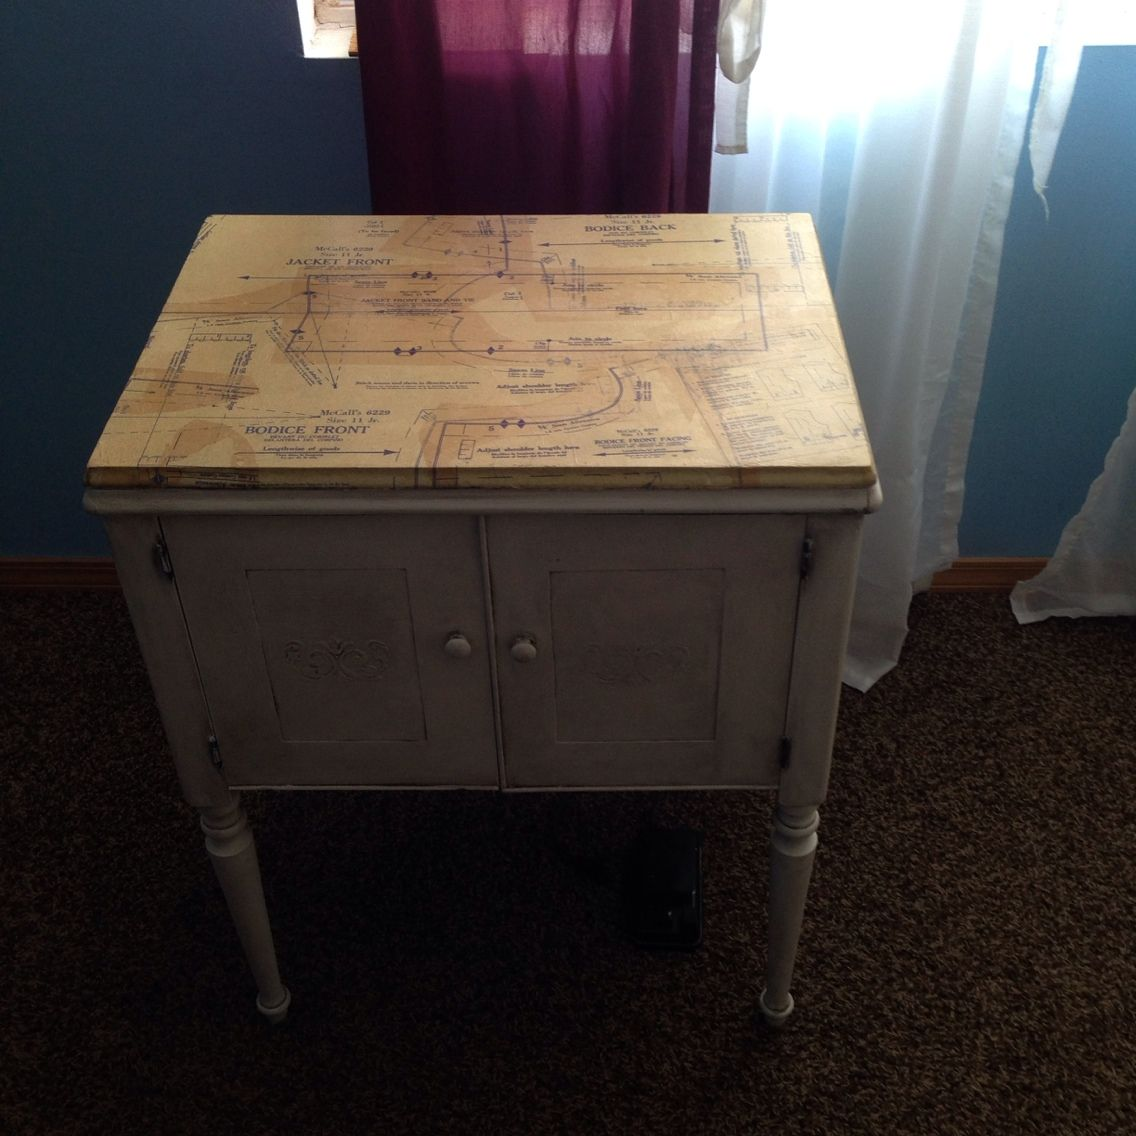 Vintage Singer Sewing Machine and cabinet painted in antique white ...